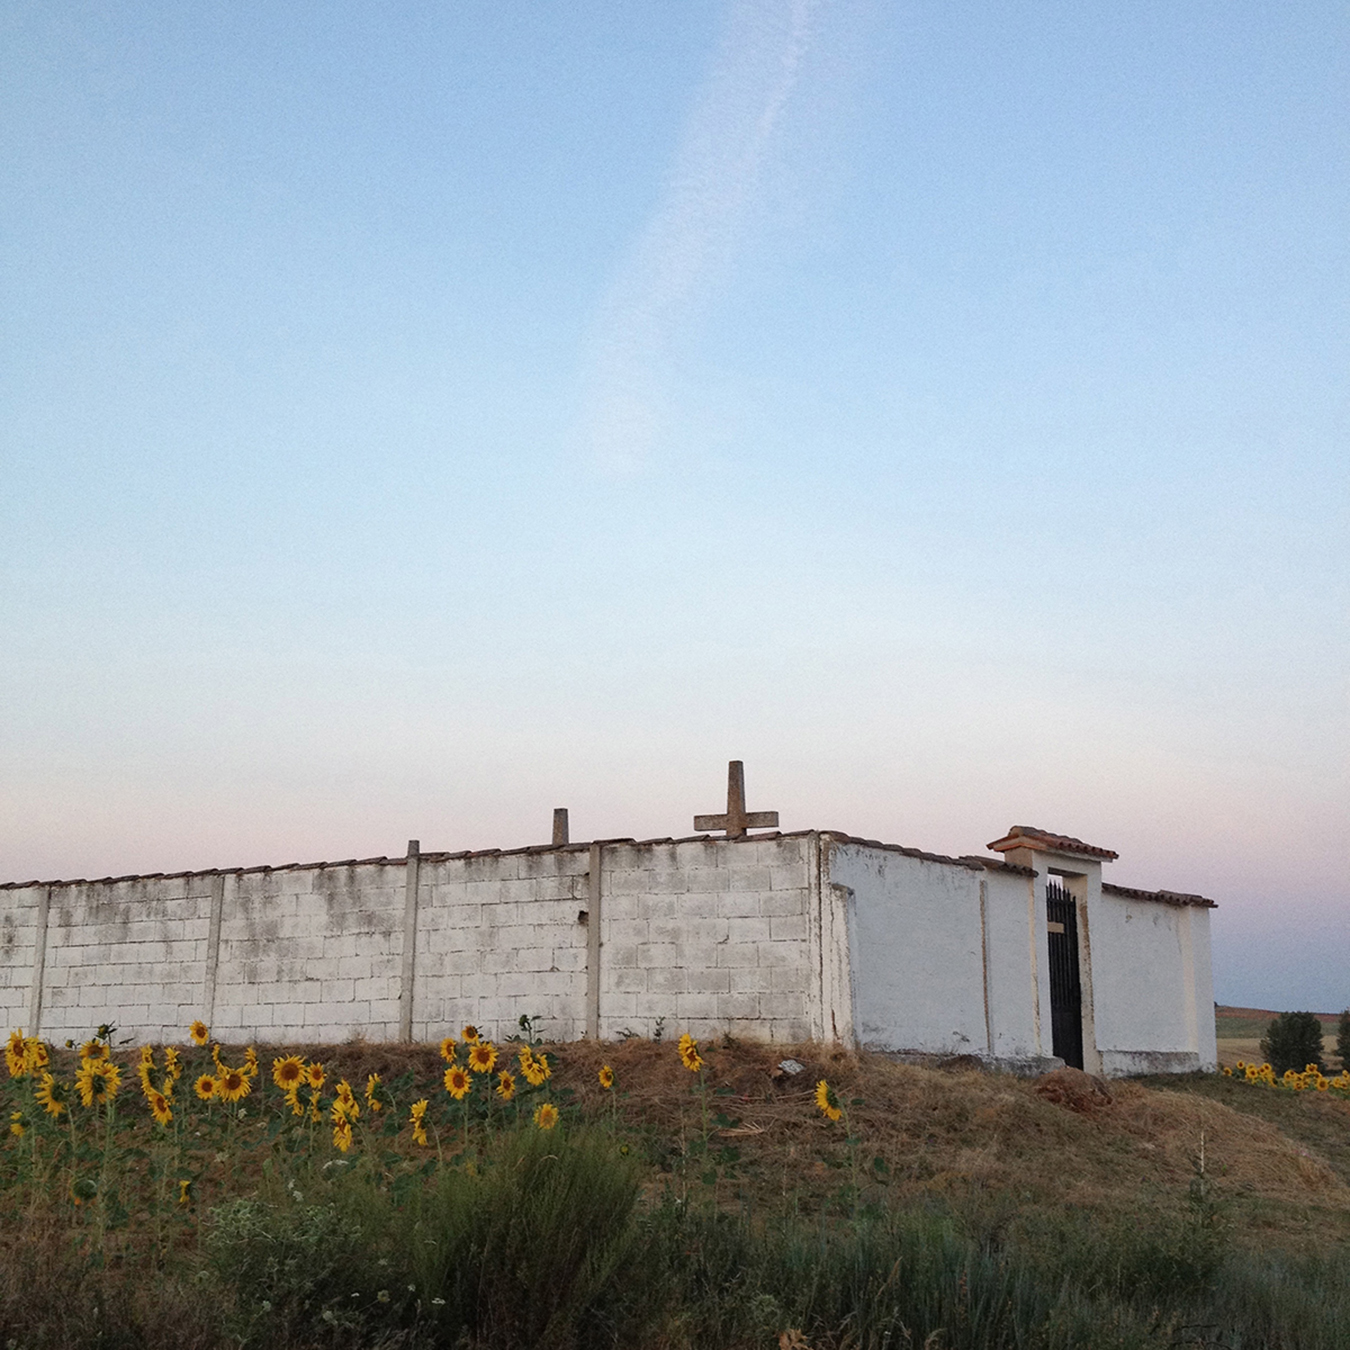 07_white_perspective_sunflowers_small.jpg